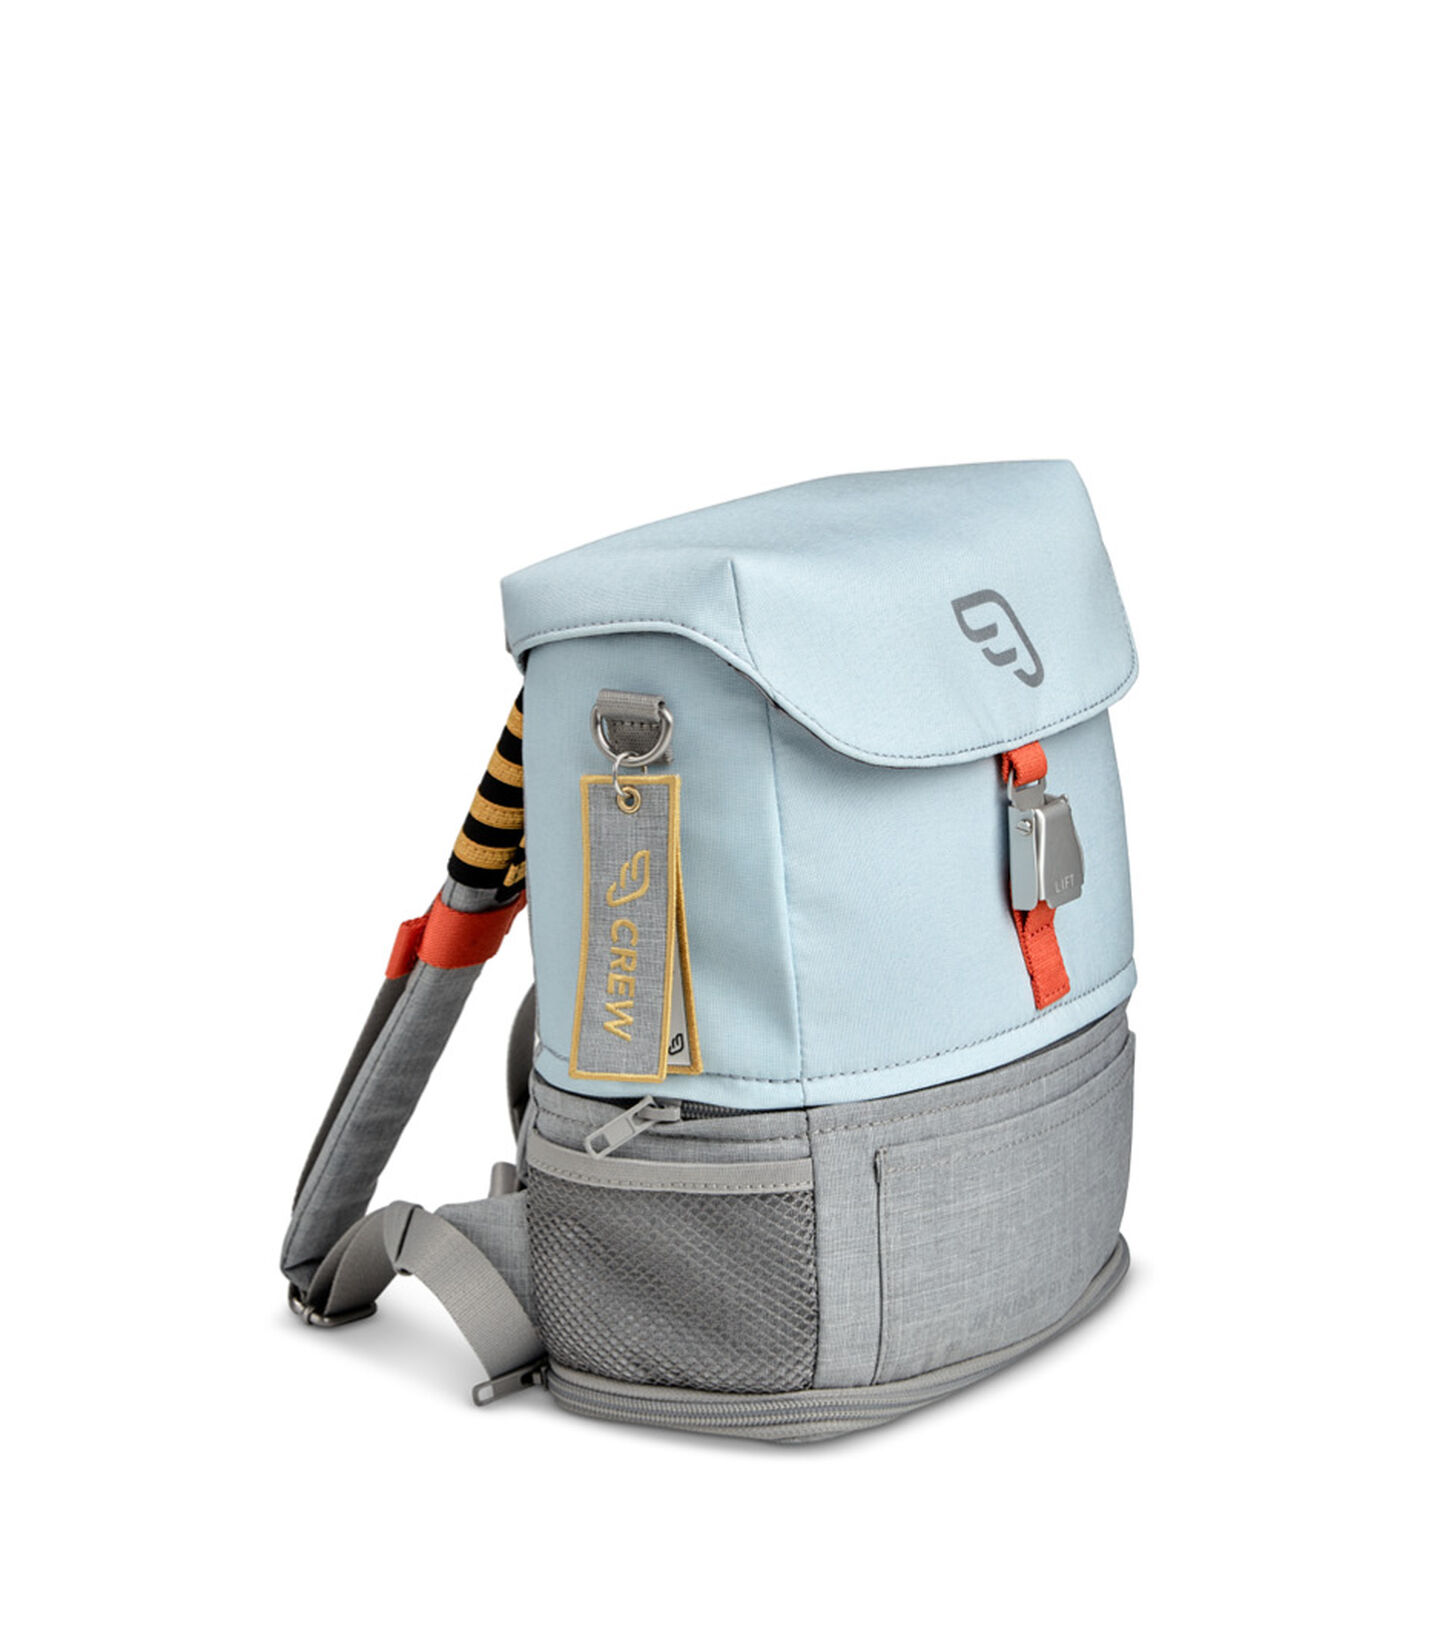 JETKIDS Crew Backpack Blue Sky, Bleu Ciel, mainview view 2